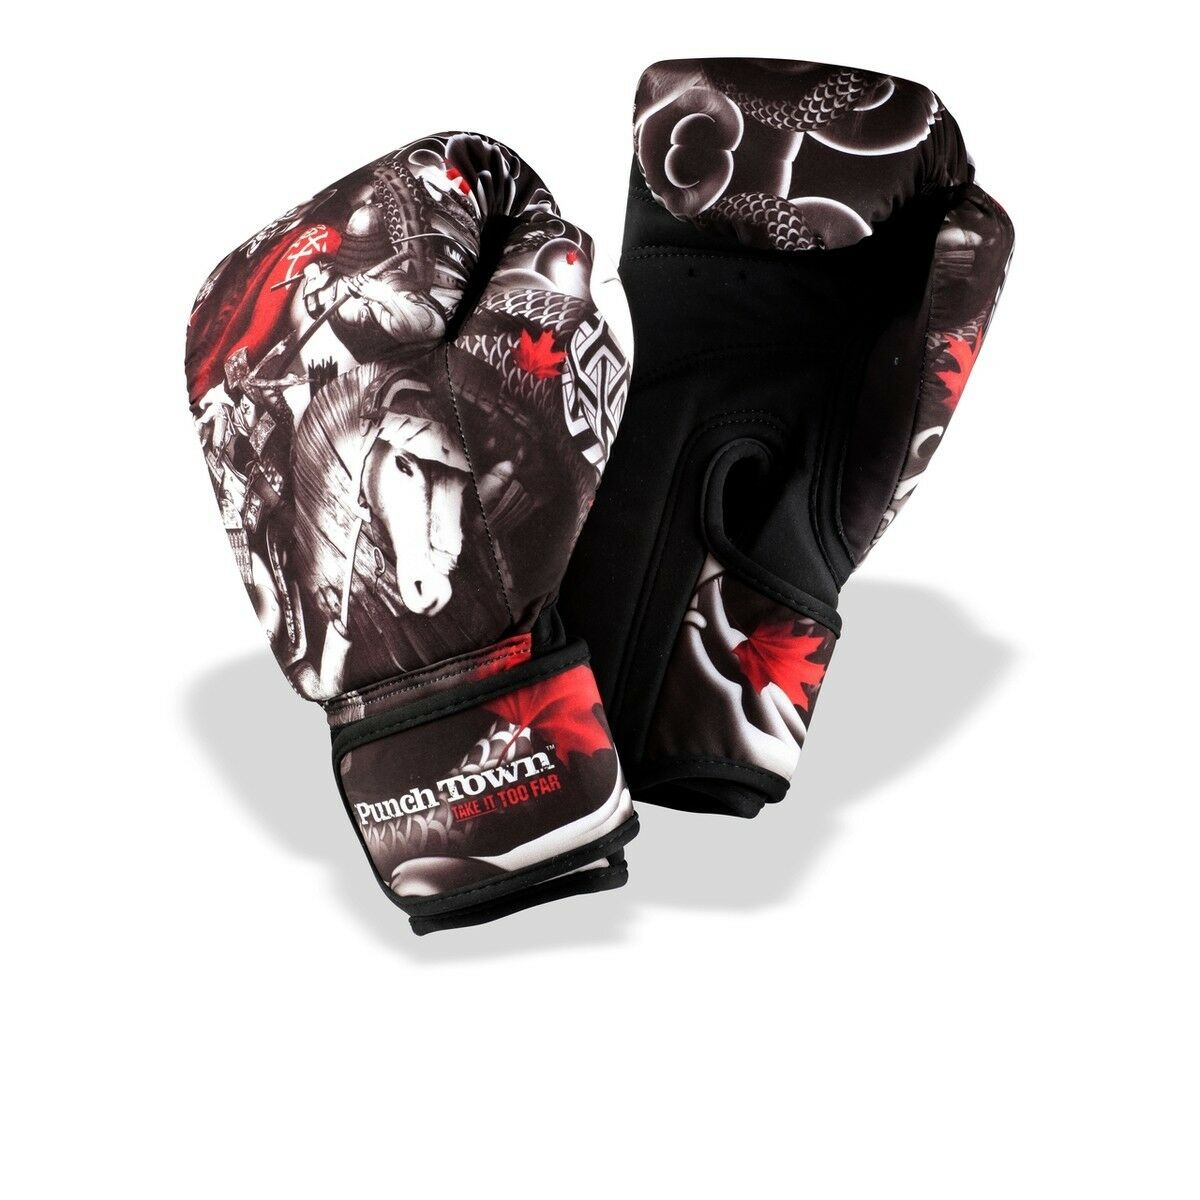 Punch Battle Town Oni Battle Punch Washable Boxing Gloves 50e003